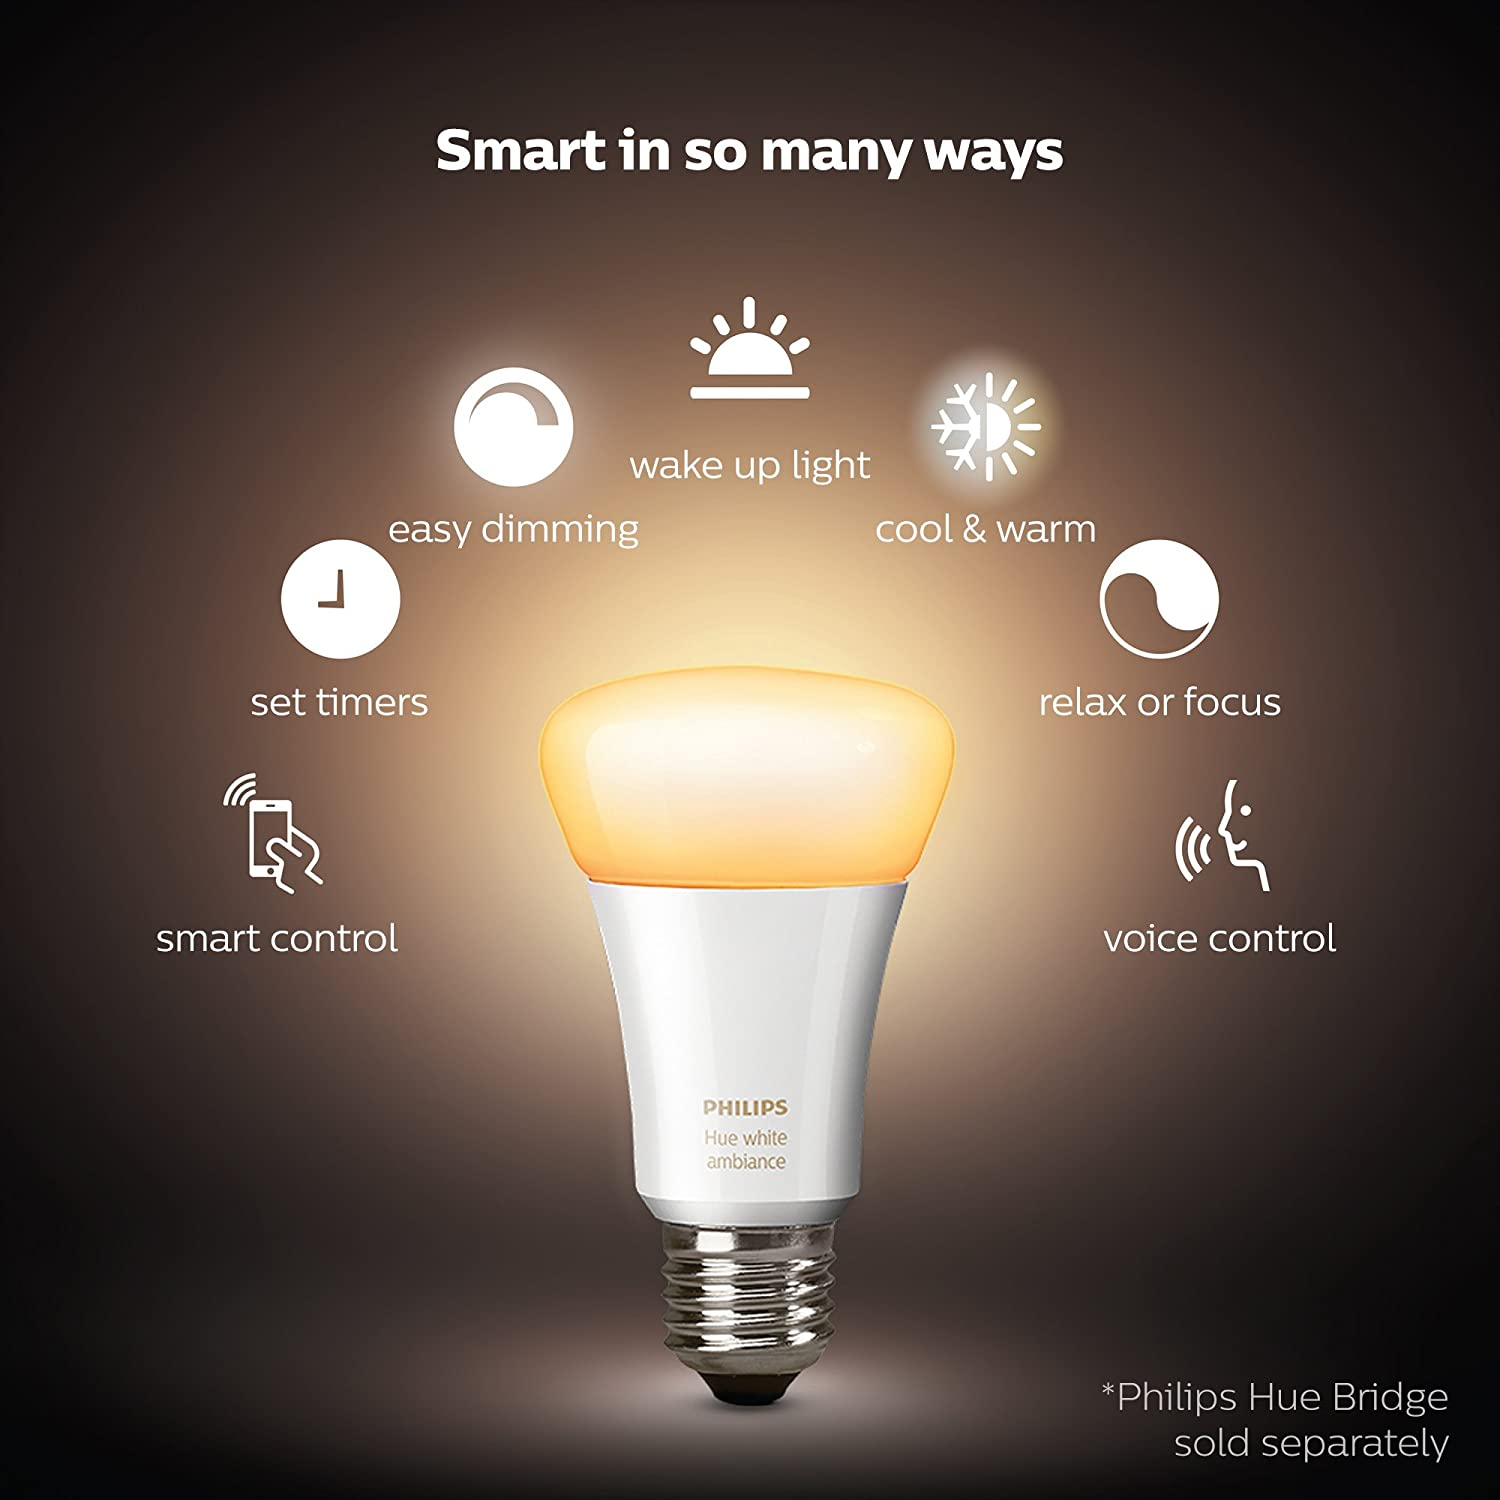 Philips Ambiance A19 2 Retail Hue White 60W Equivalent Dimmable LED Sart Bulb Works with Alexa Apple Homekit and Google Assistant 2-Pack